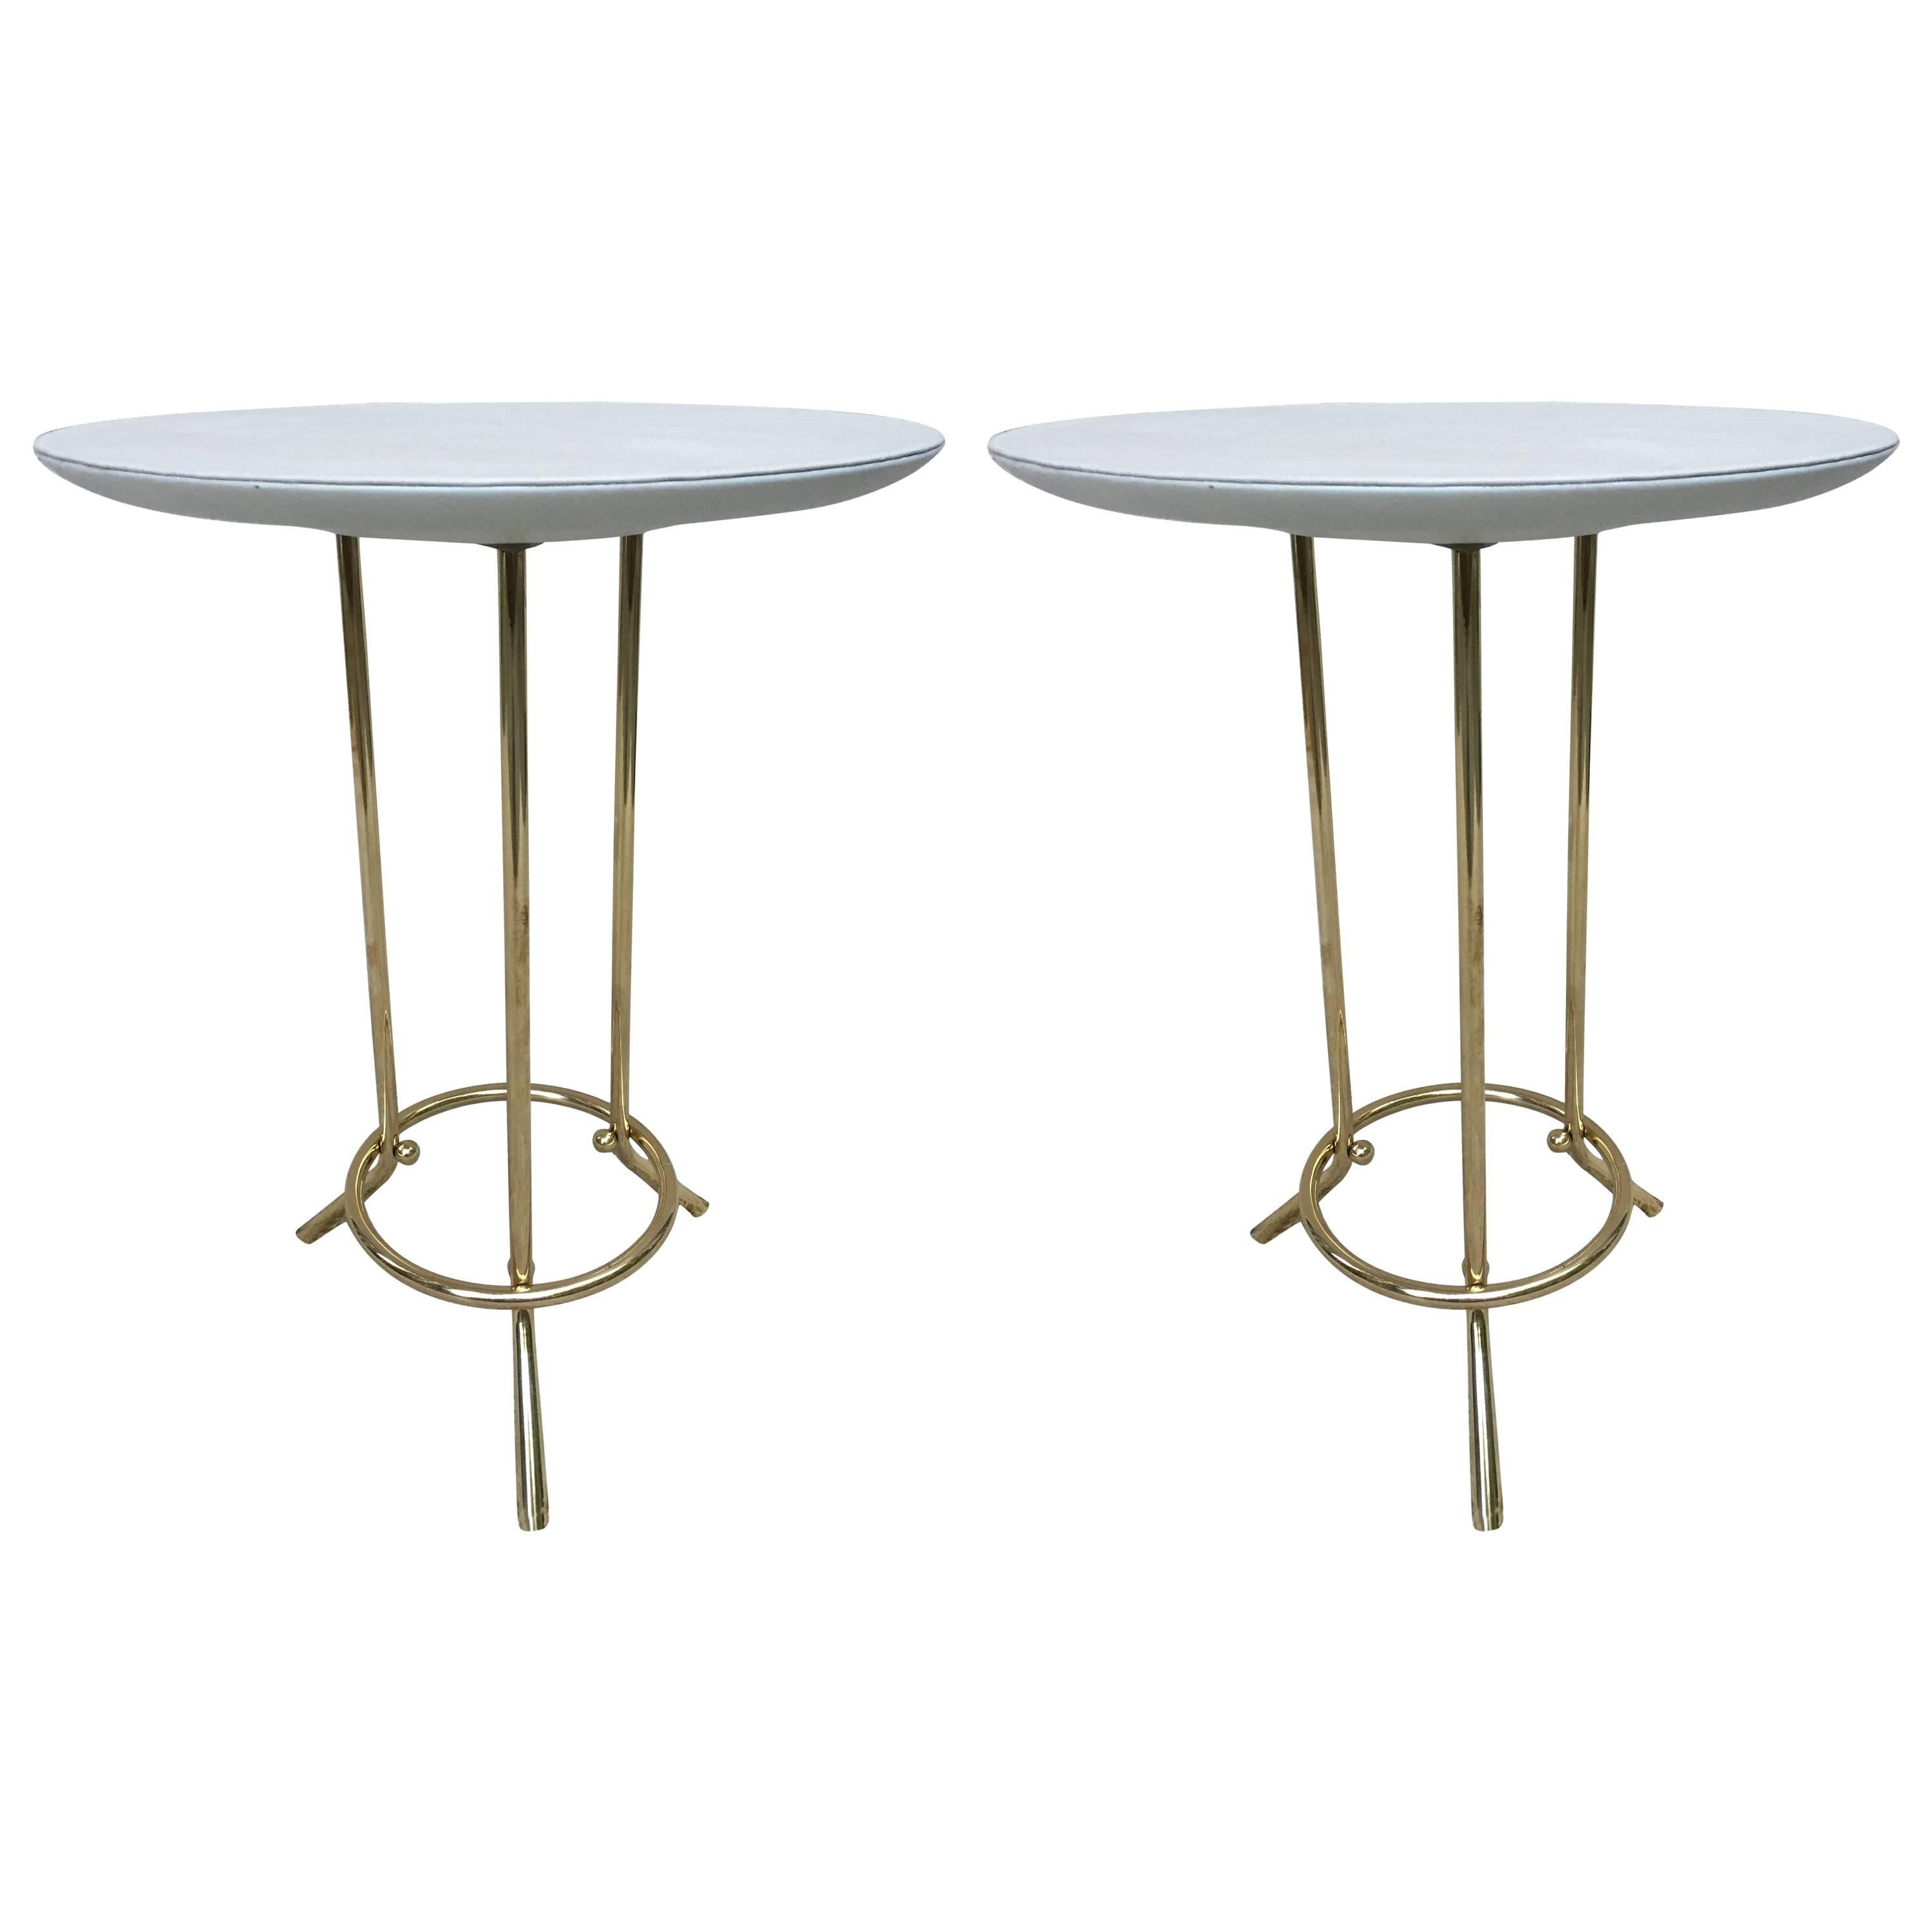 Brass Peacock Table For Sale at 1stdibs